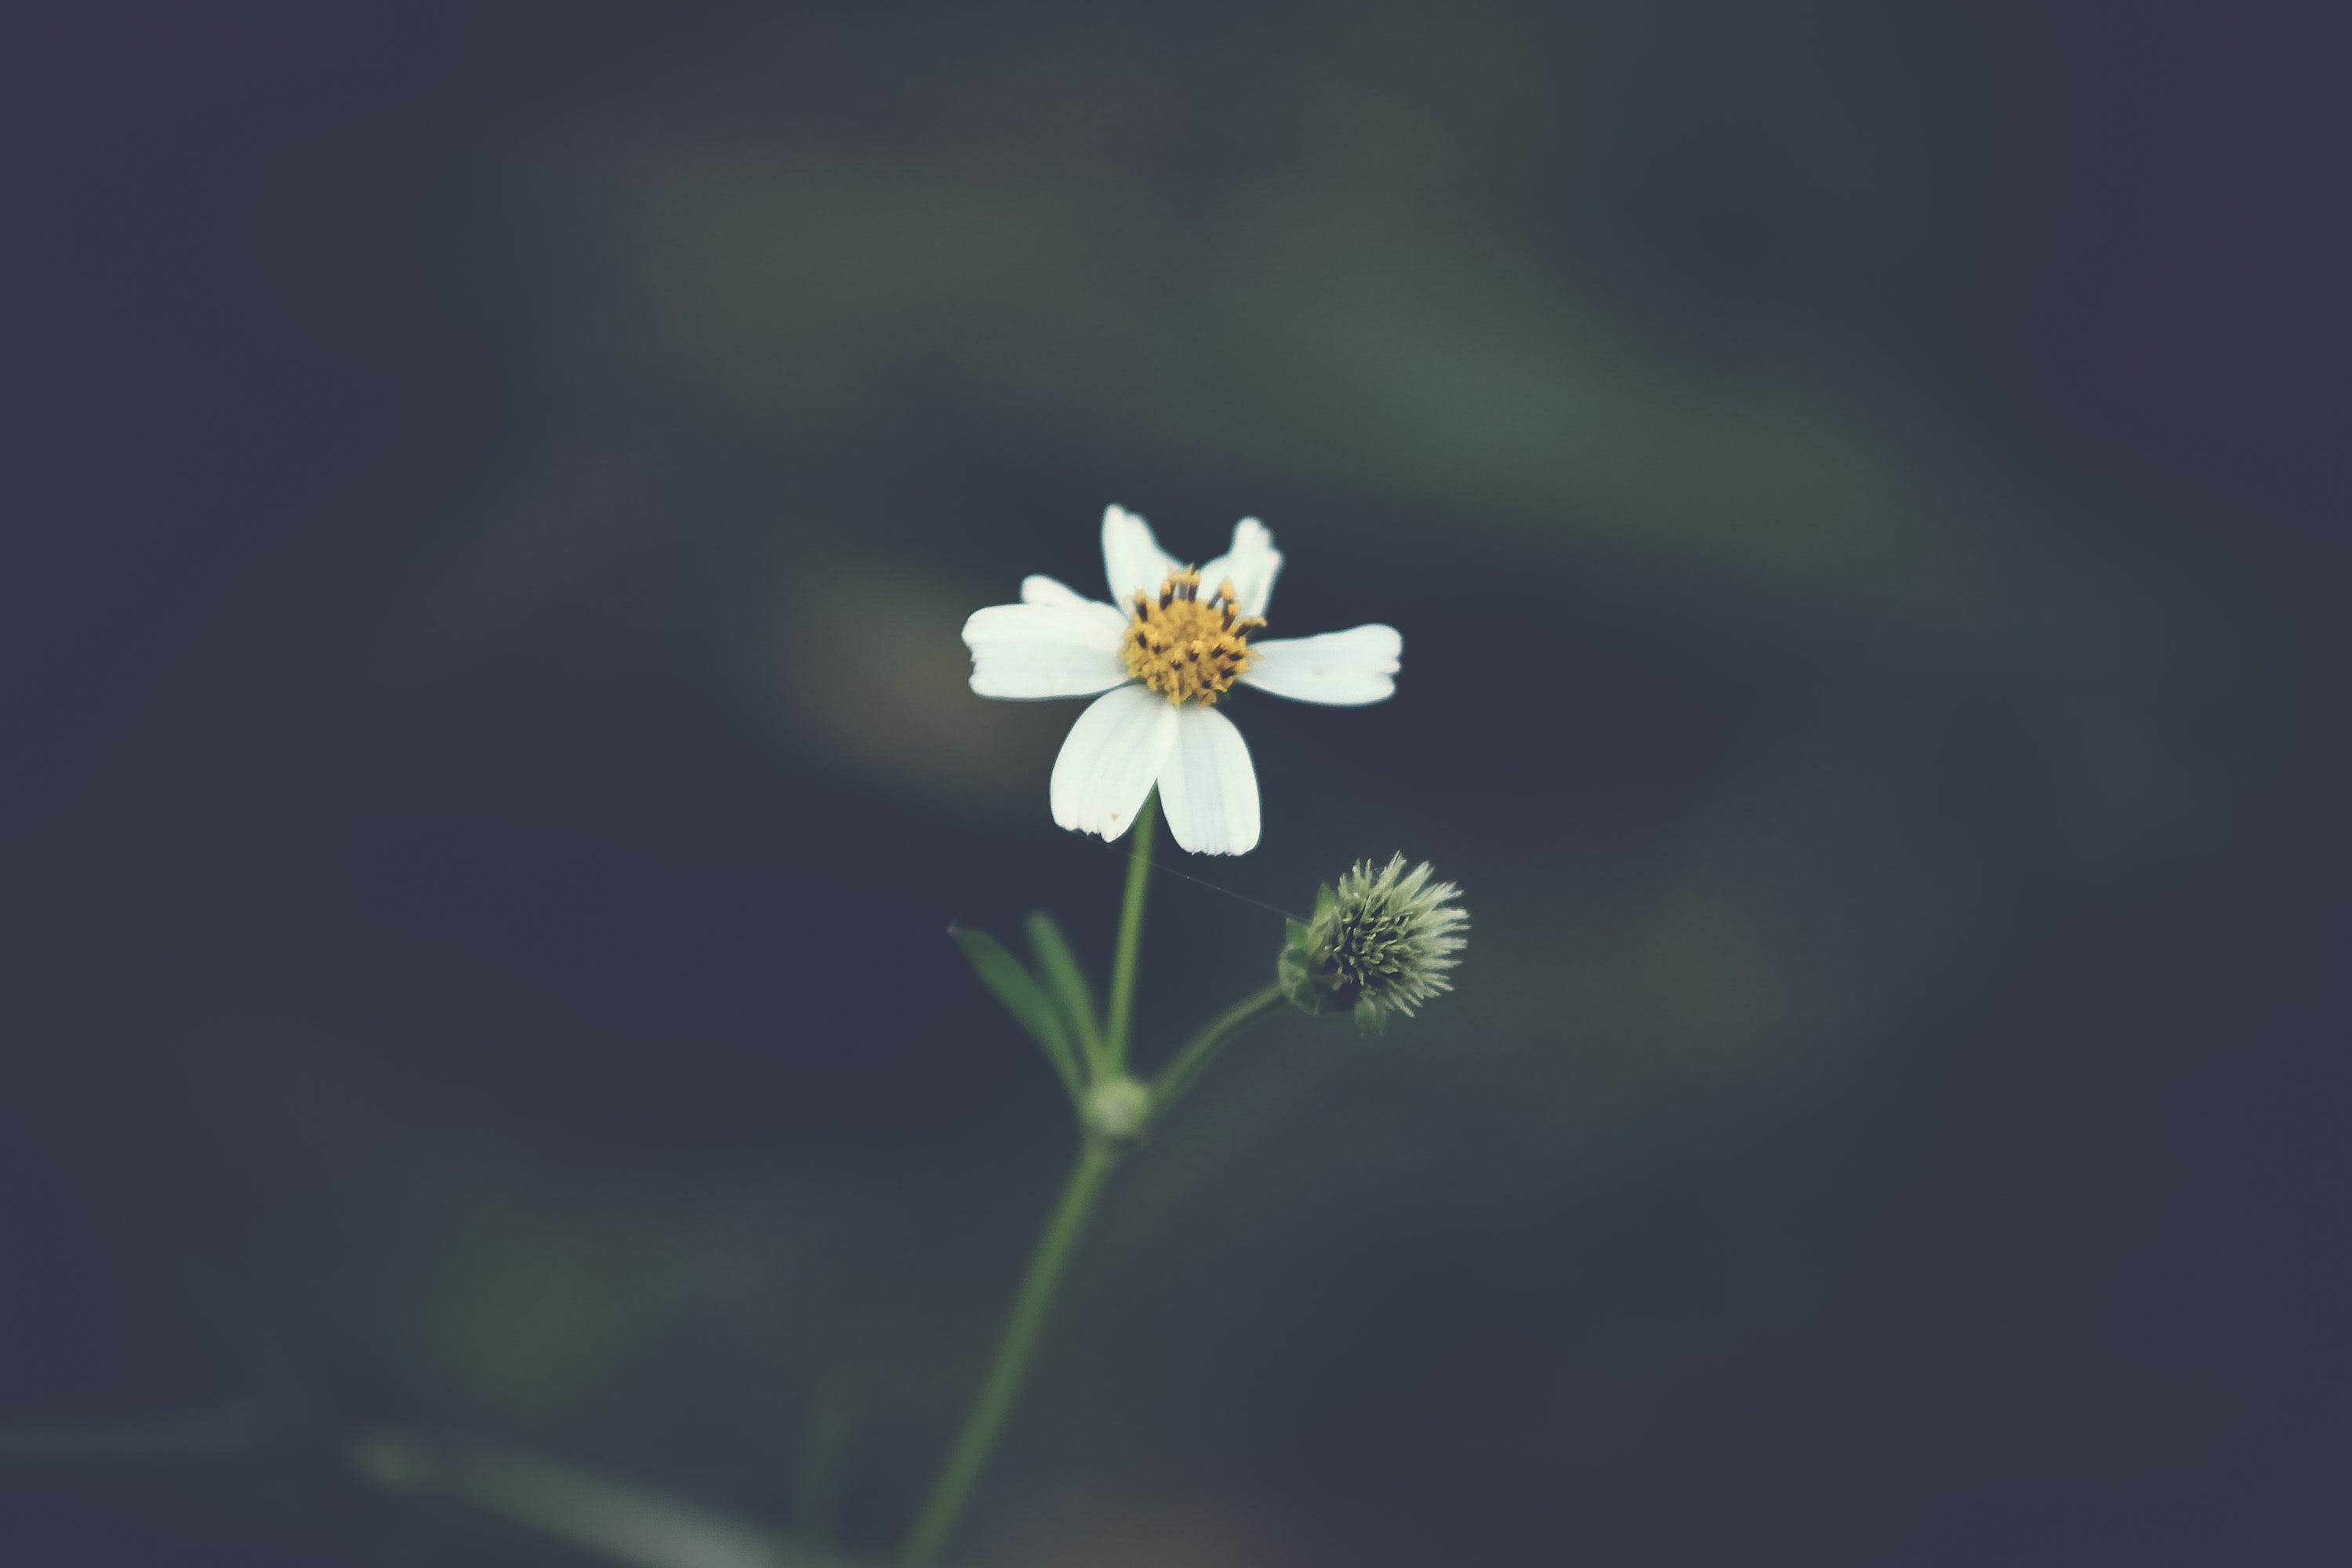 Selective Focus Photo of White Petaled Flower